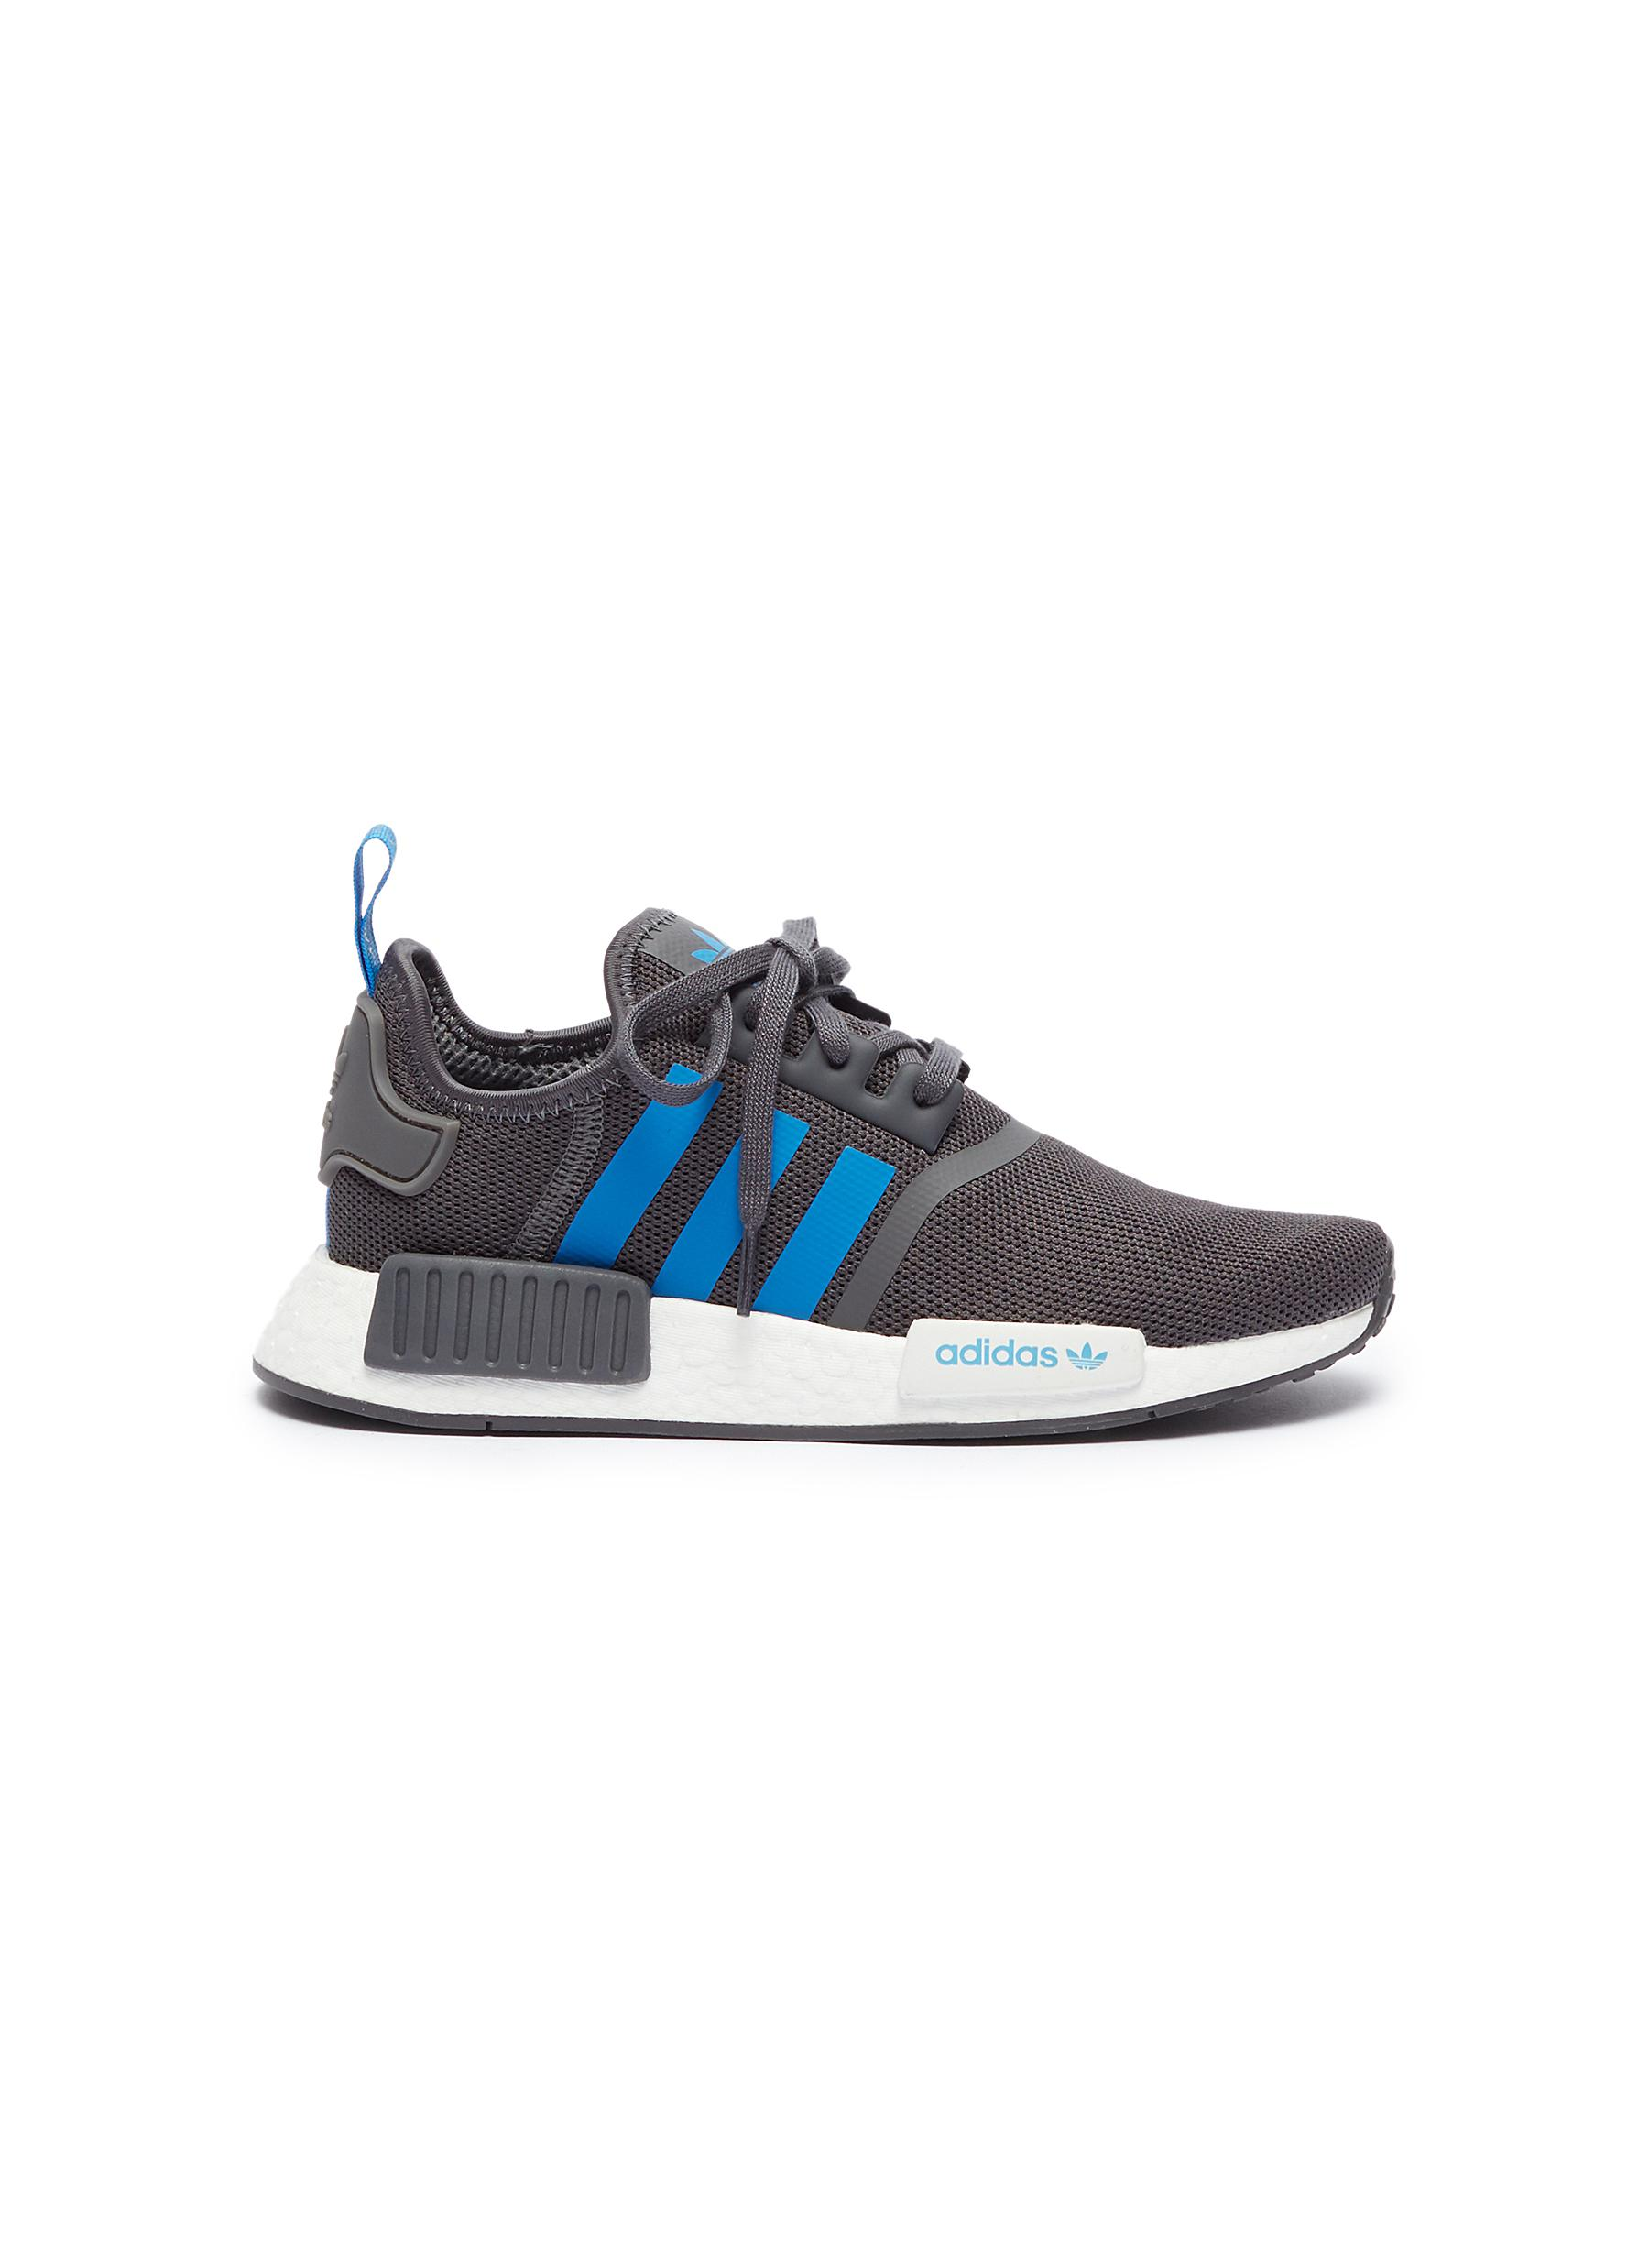 1cd7bba90 Main View - Click To Enlarge - adidas -  NMD R1  Primeknit boost™